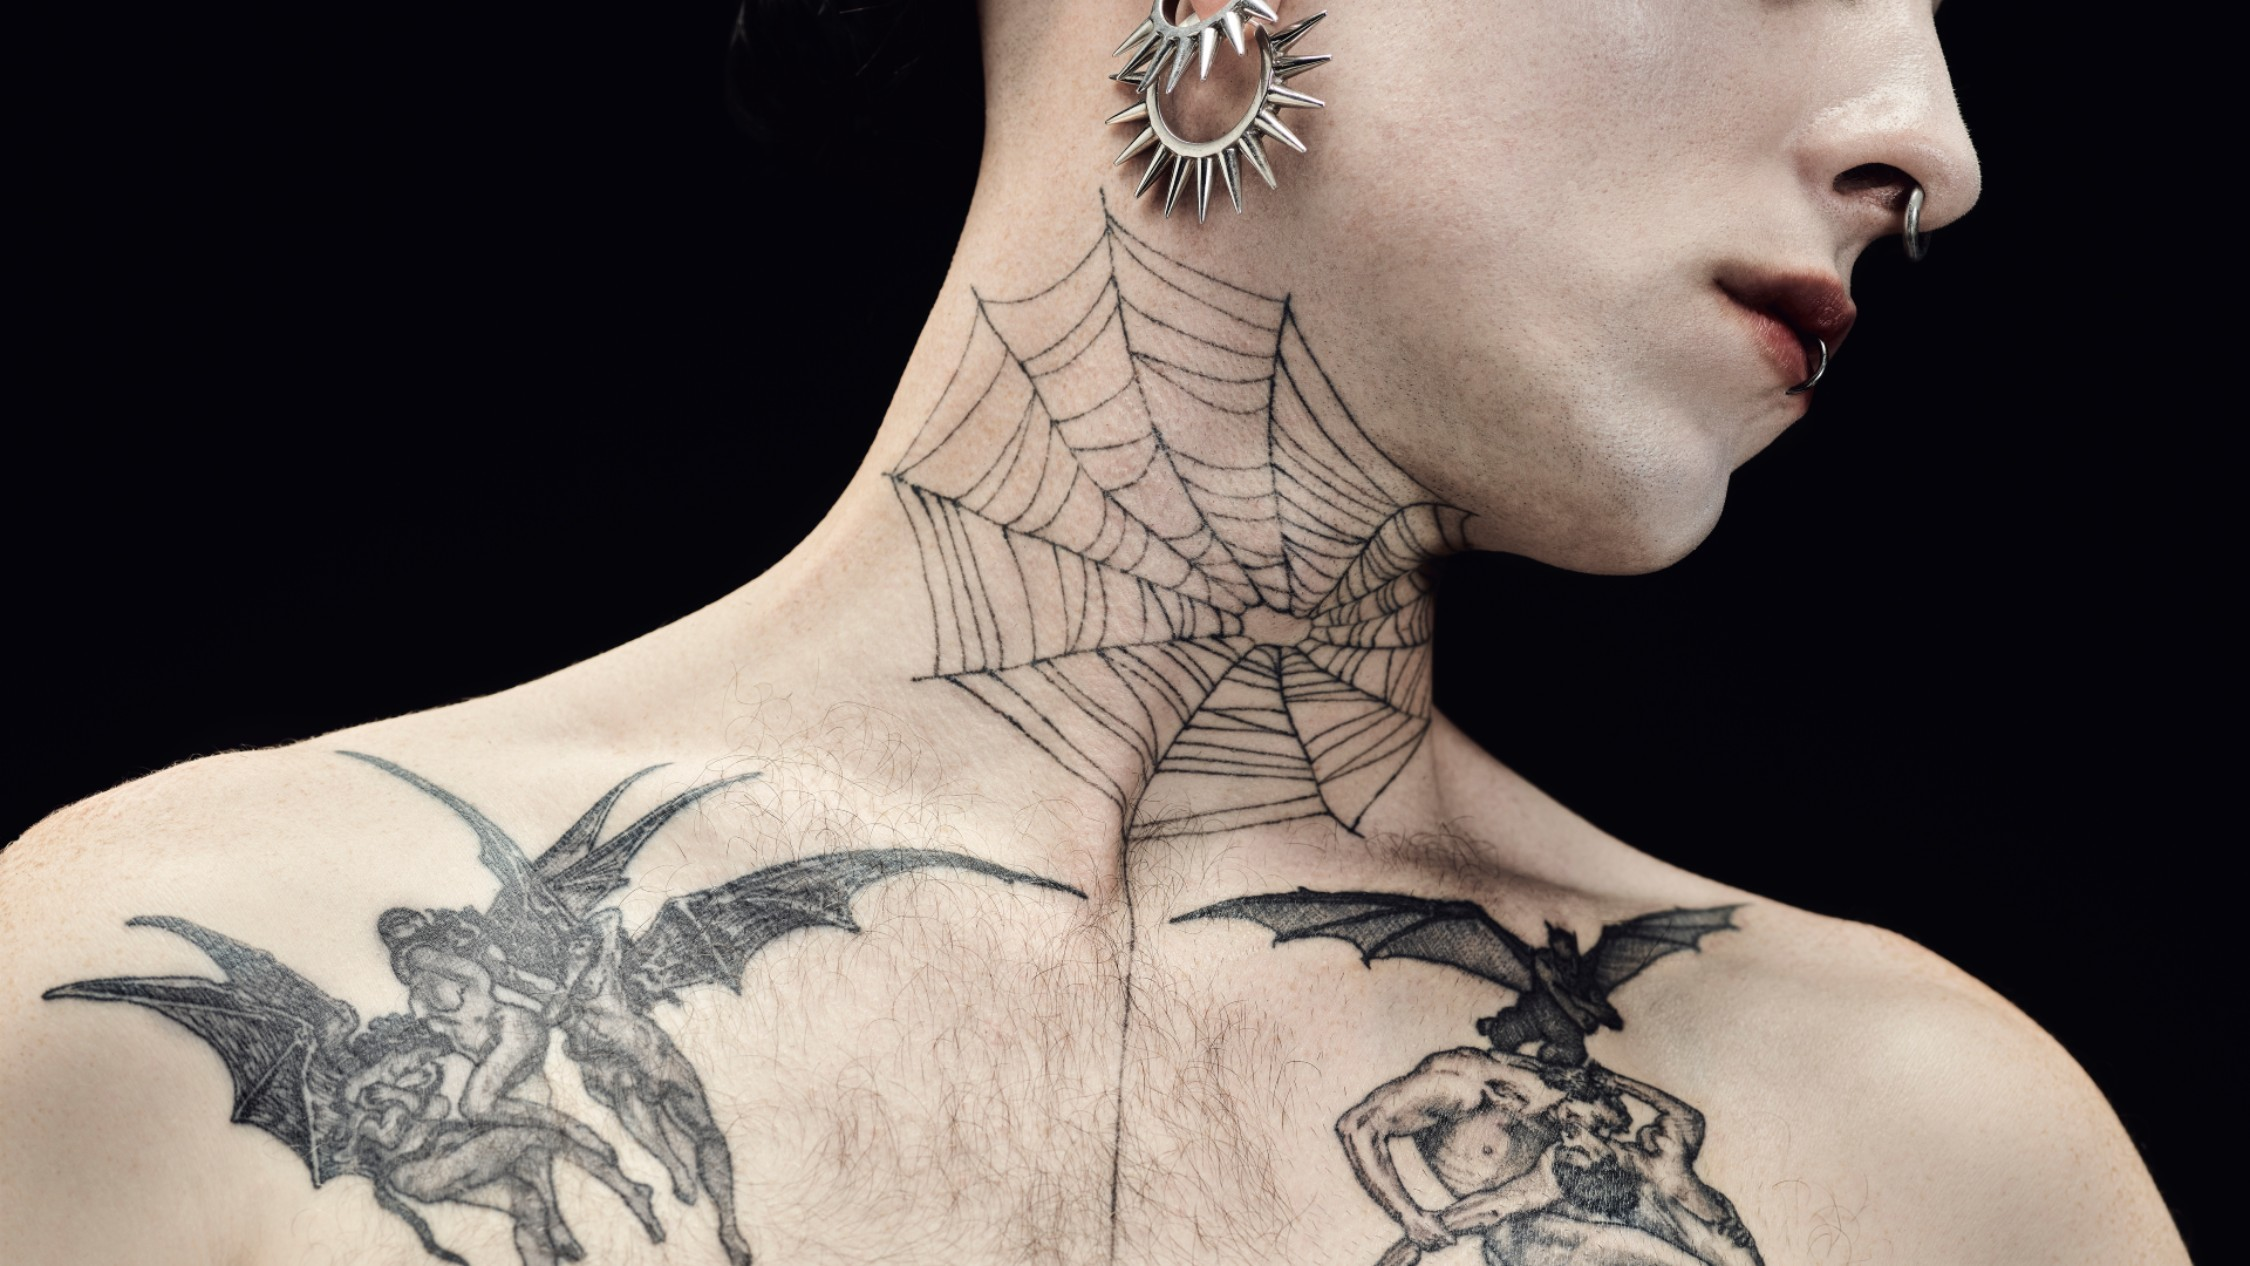 A close up of a pale man's lower face and upper torso with spider web tattoo